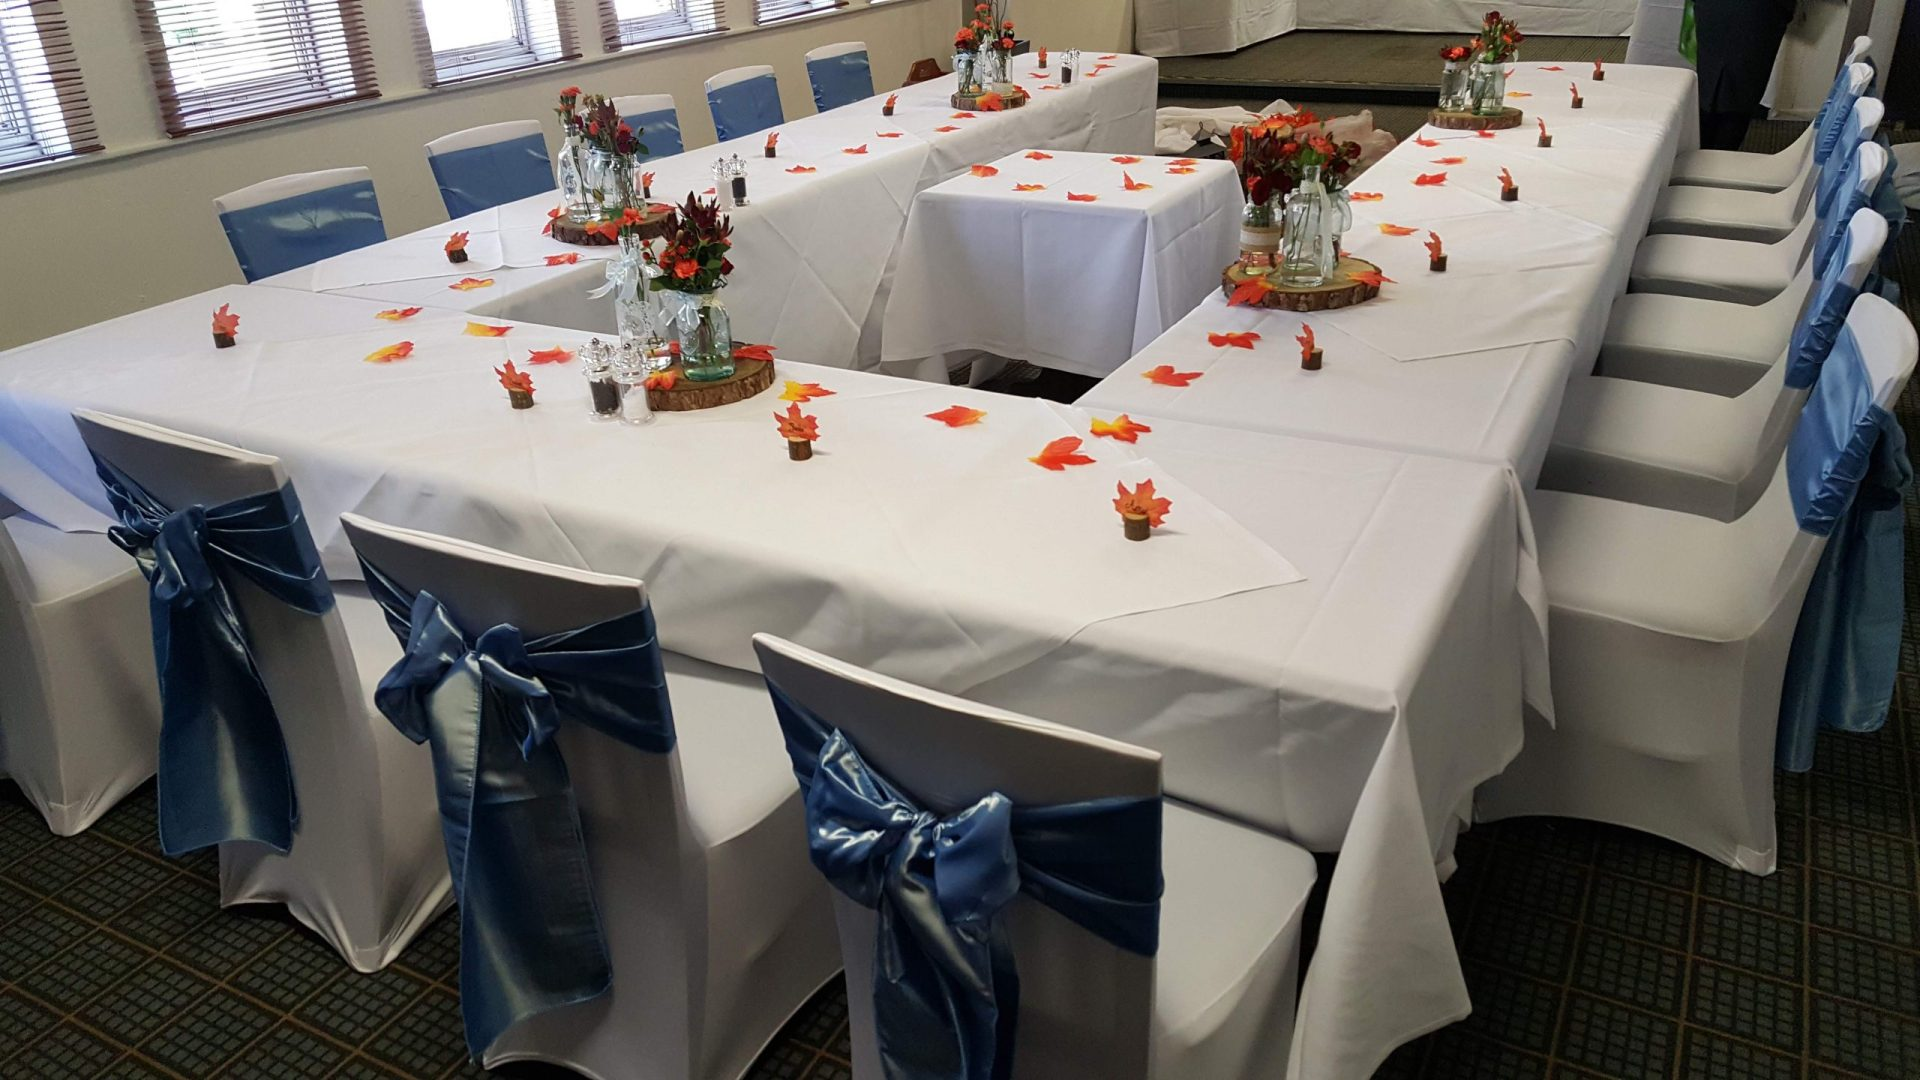 Blue Sashes with Leaves and autumn inspired Table decorations